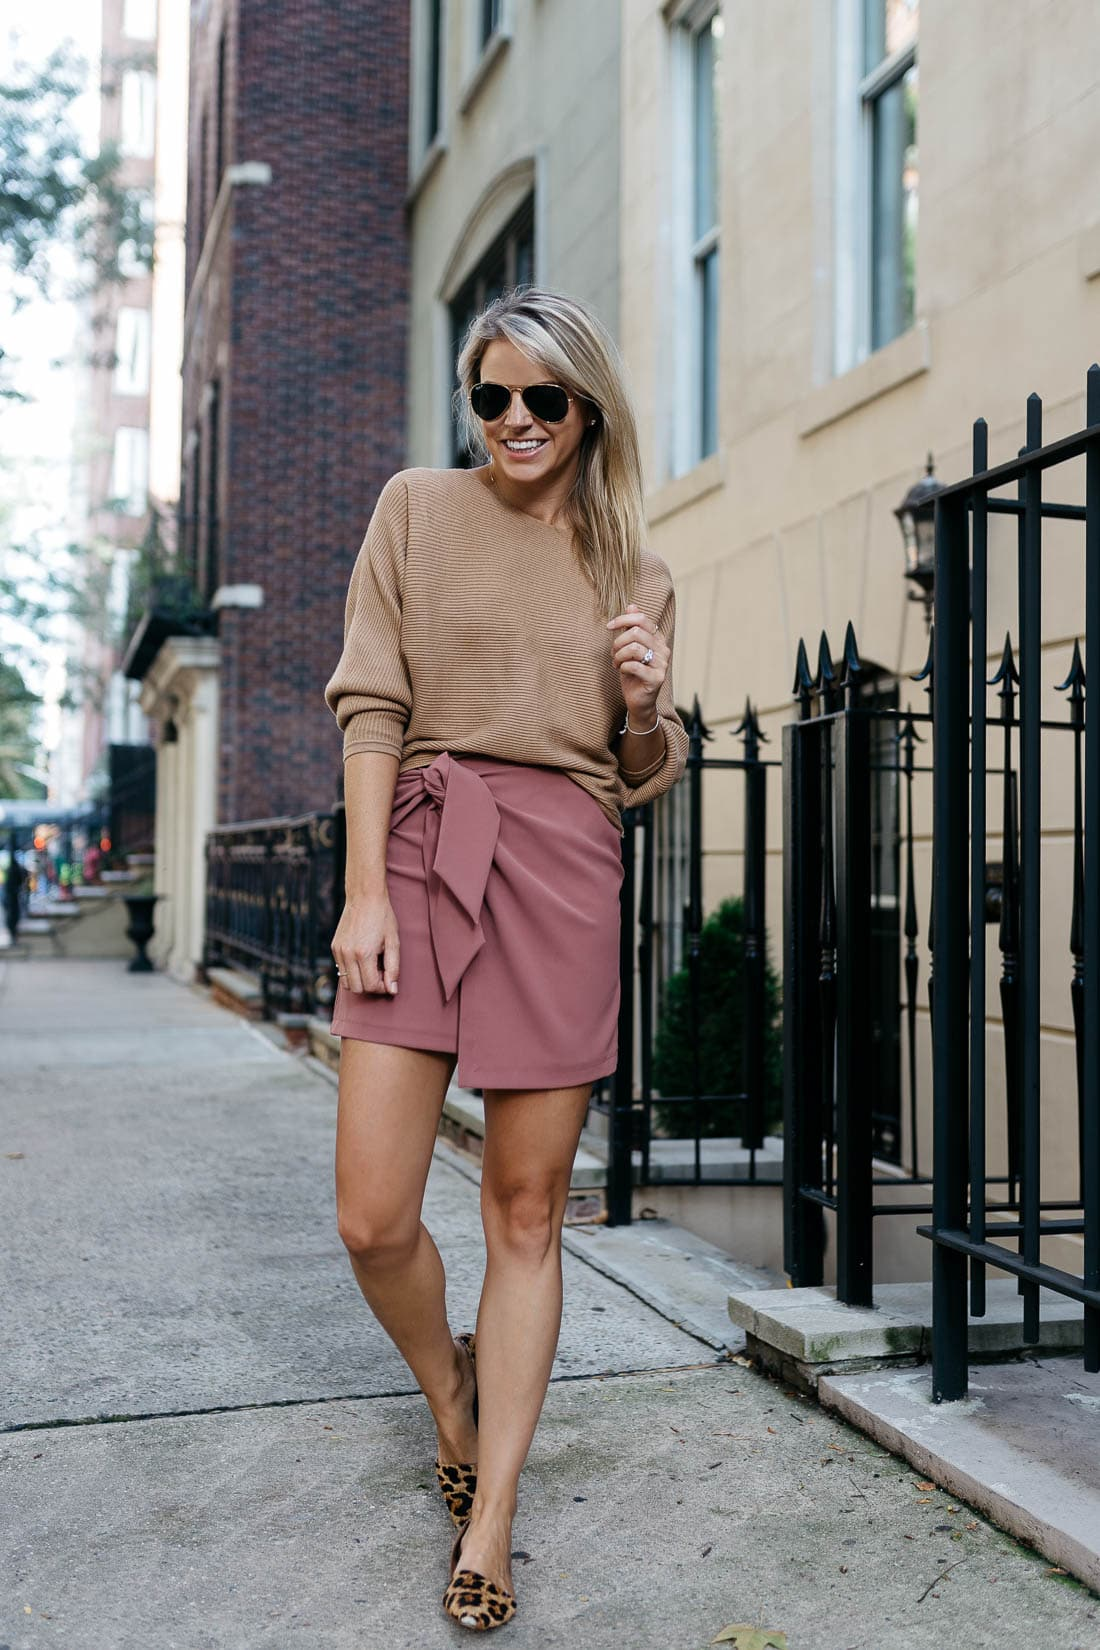 cba5d89cd0fe As August cruises by, I have been starting to look for pieces that can  transition easily into fall. Wrap skirts have been high on my list and  there are so ...